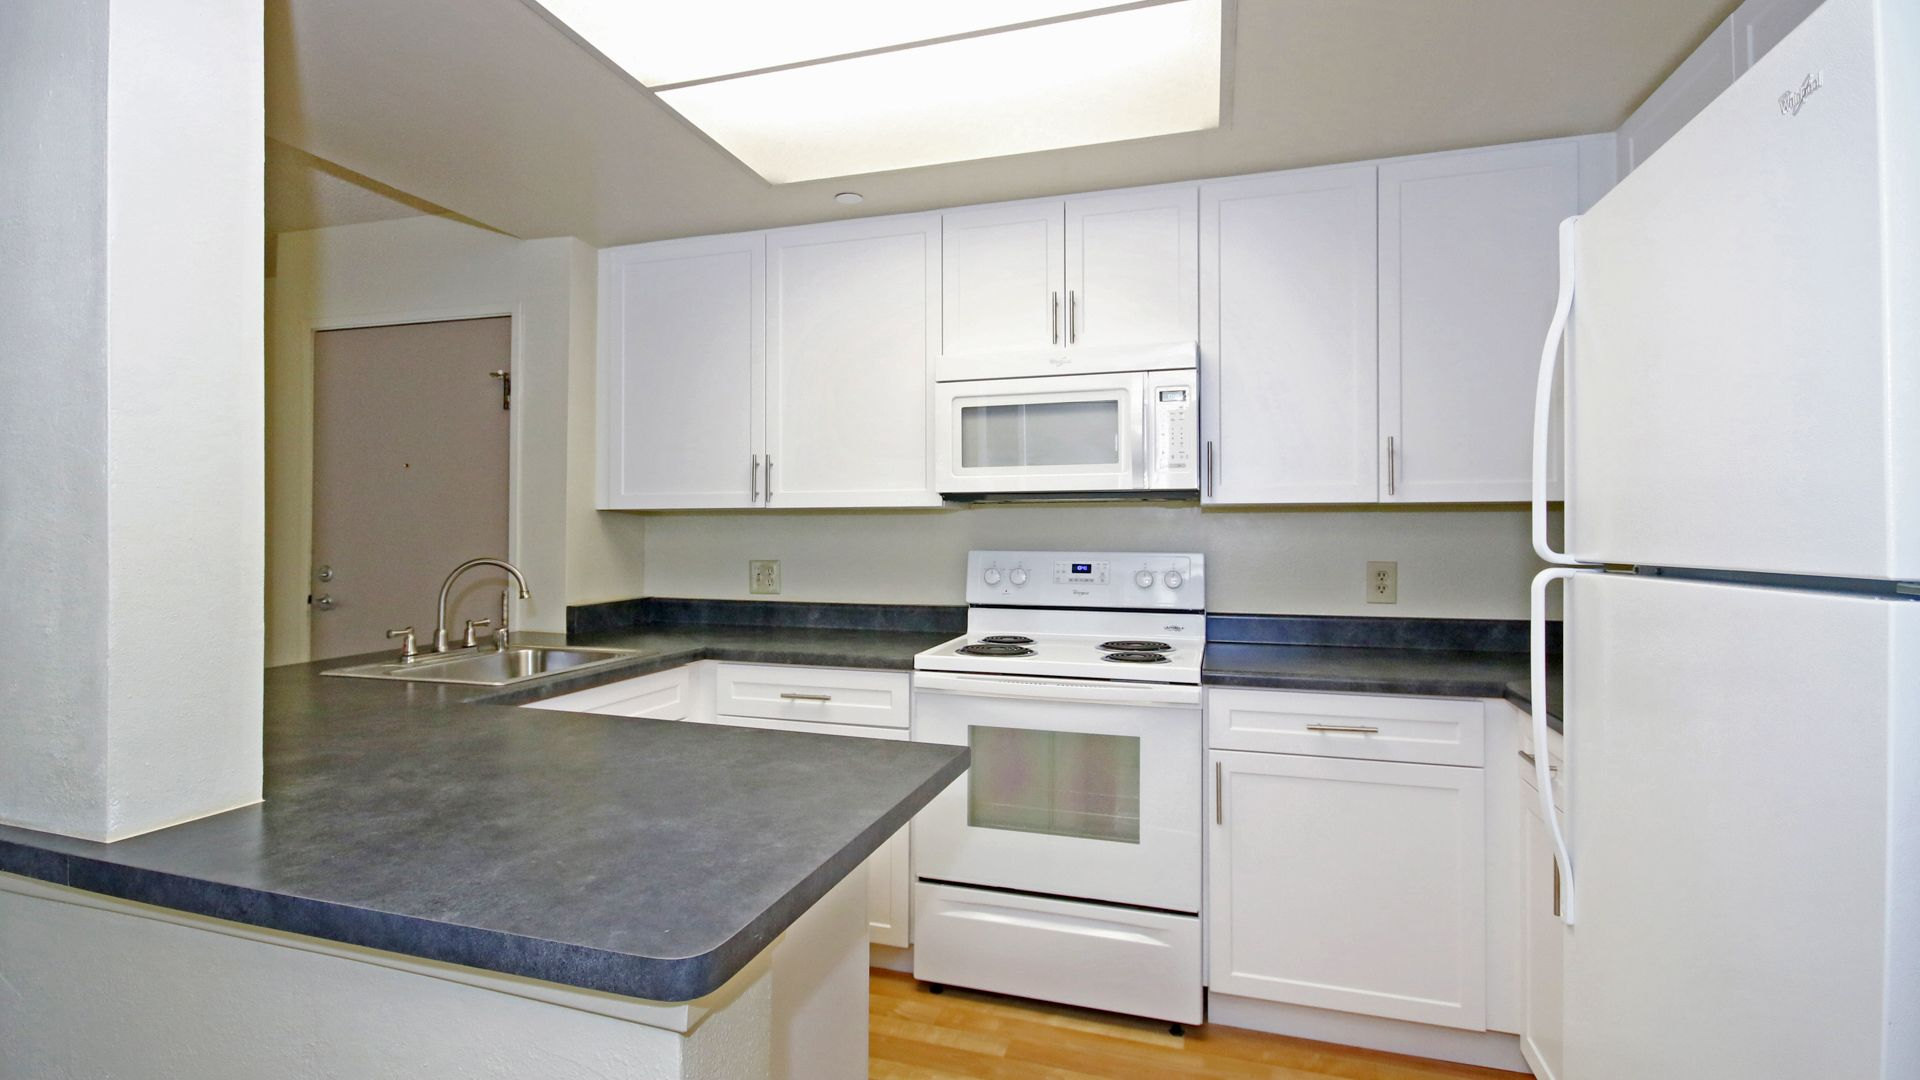 Ocean Crest Apartments - Kitchen